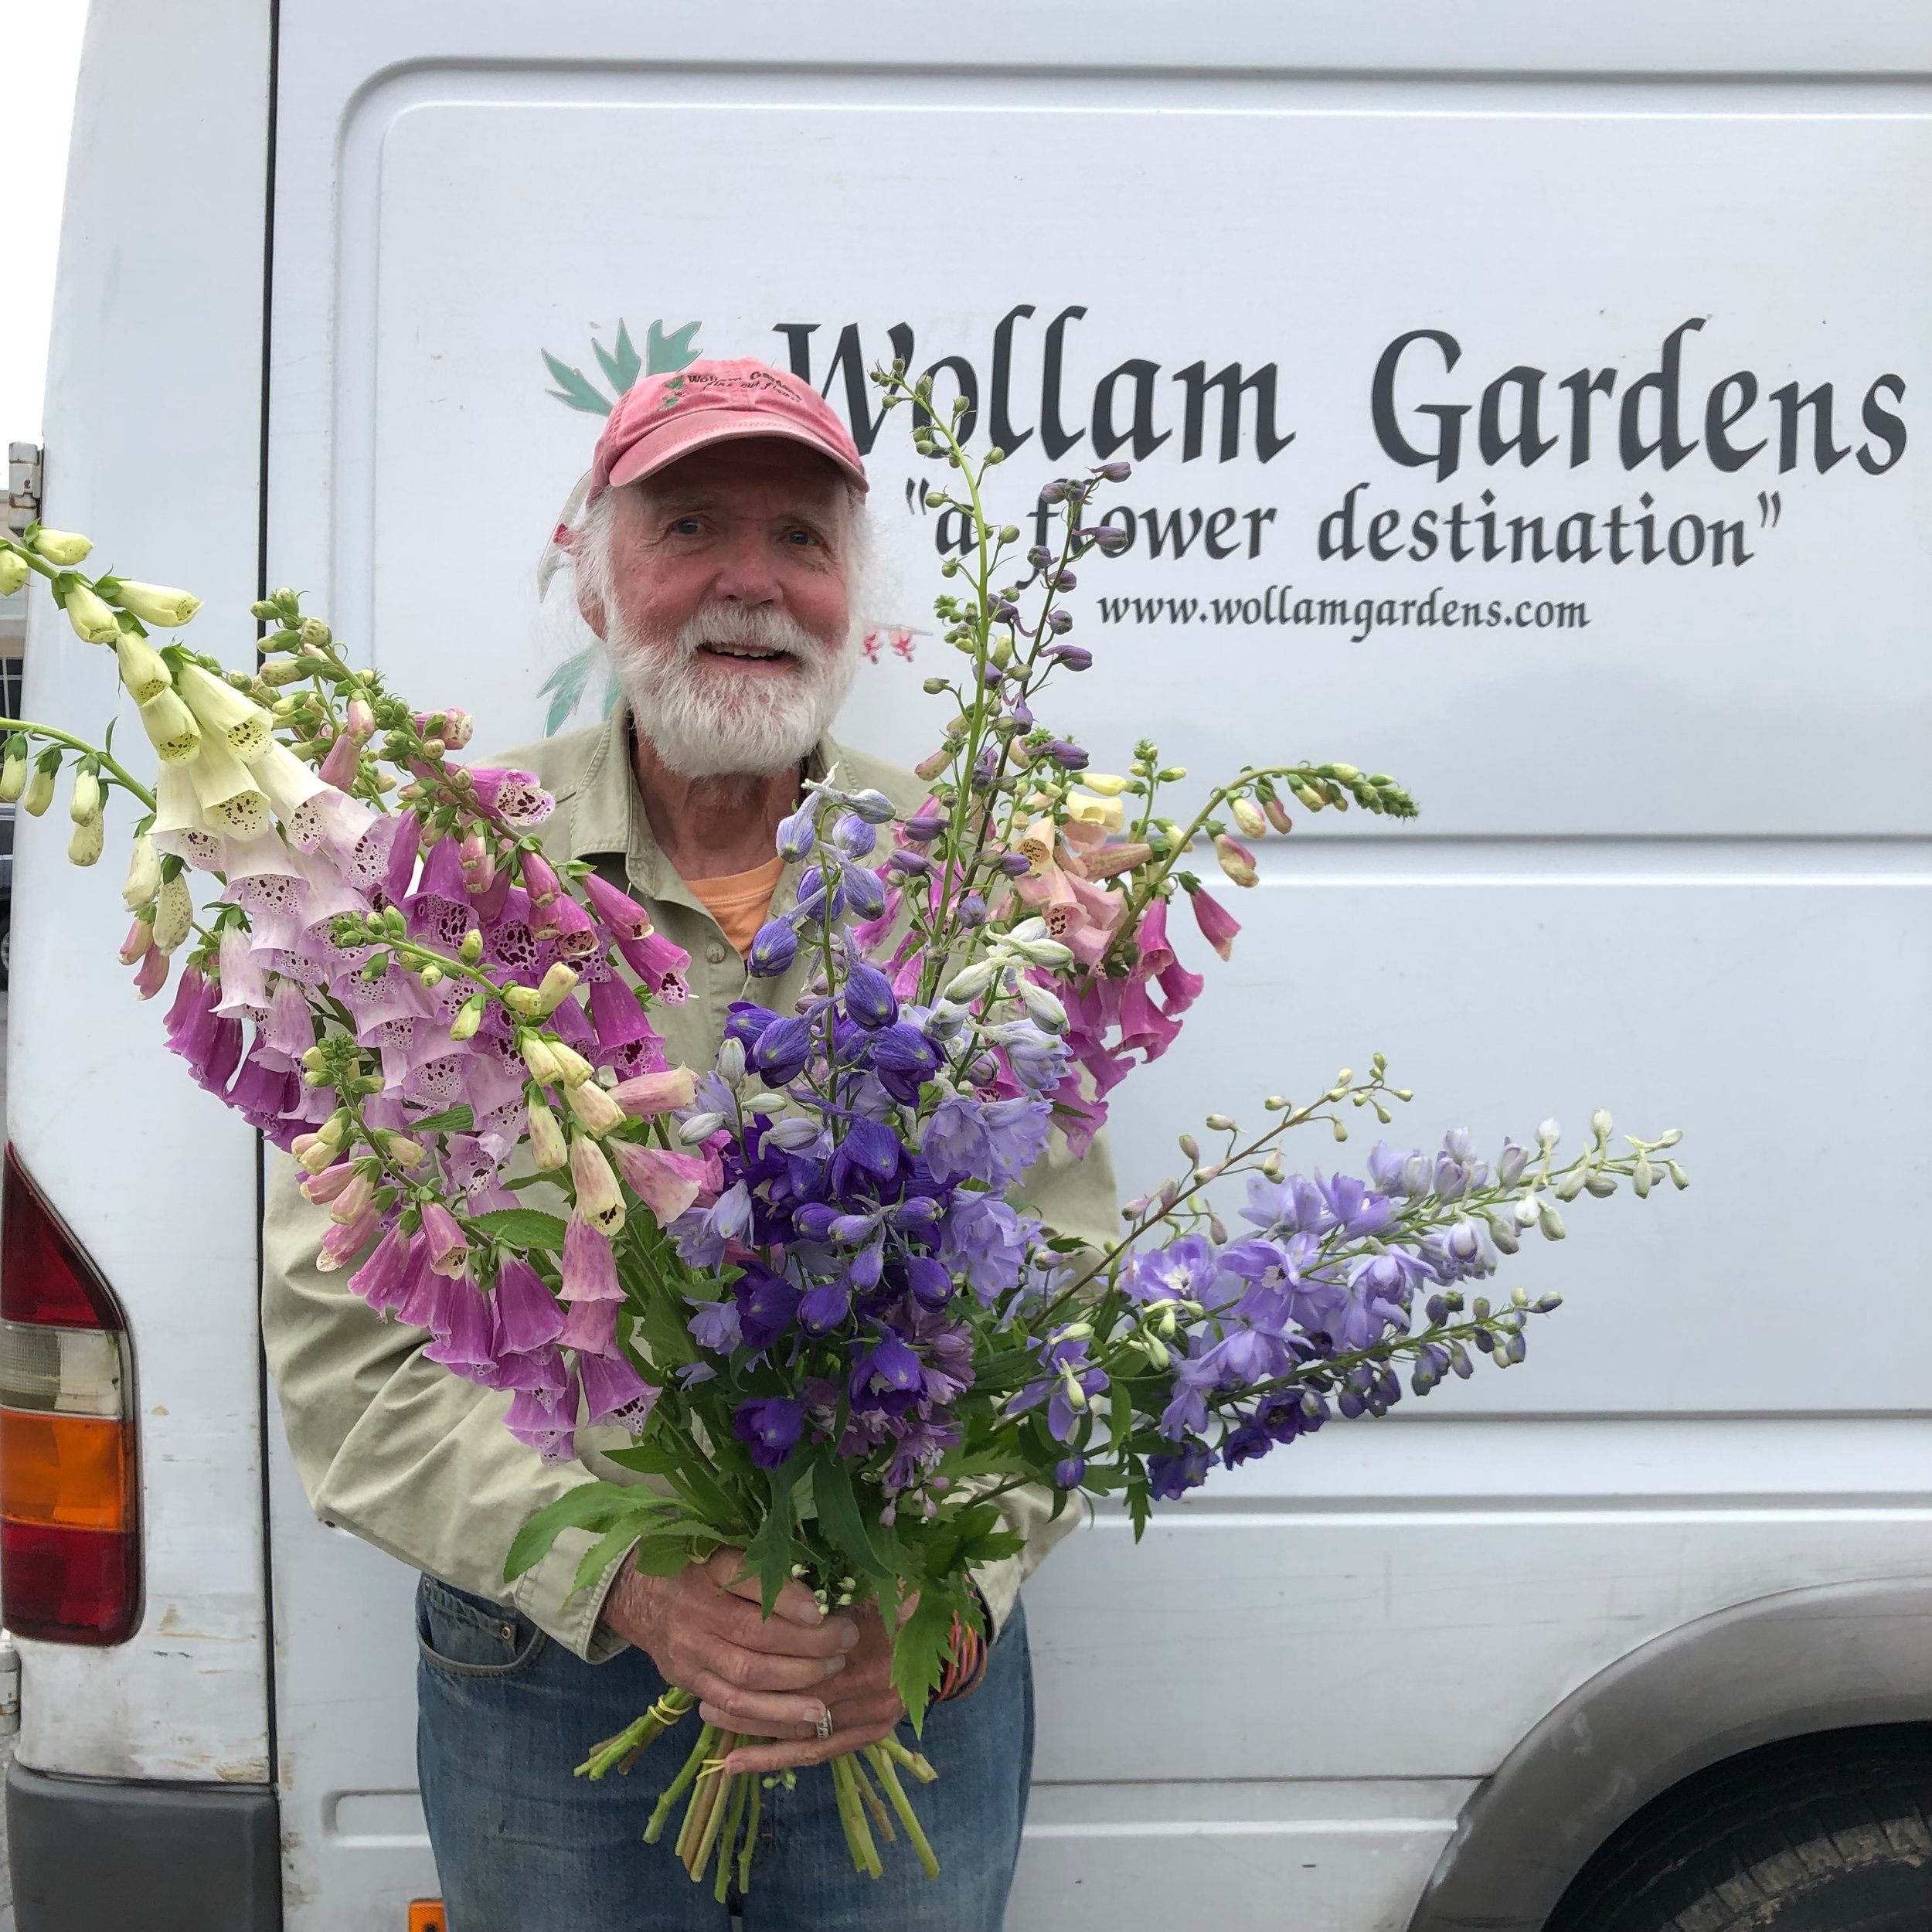 """Bob Wollam - The owner of Wollam Gardens, Bob has been growing cut flowers since 1988. Since then, he has devoted his time to growing local, sustainably harvested flowers on Wollam Gardens' 11 acres. His efforts have helped to promote the importance of local flowers in the larger """"locavore"""" movement. As most cut flowers are trucked and shipped hundreds and thousands of miles before they even reach the customer, Wollam Gardens' Virginia-grown flowers serve as a model for what a modern, environmentally conscious flower business can look like. Bob splits his time between Wollam Gardens and Washington, DC, where he's resided for 28 years as a community activist, husband, and father."""